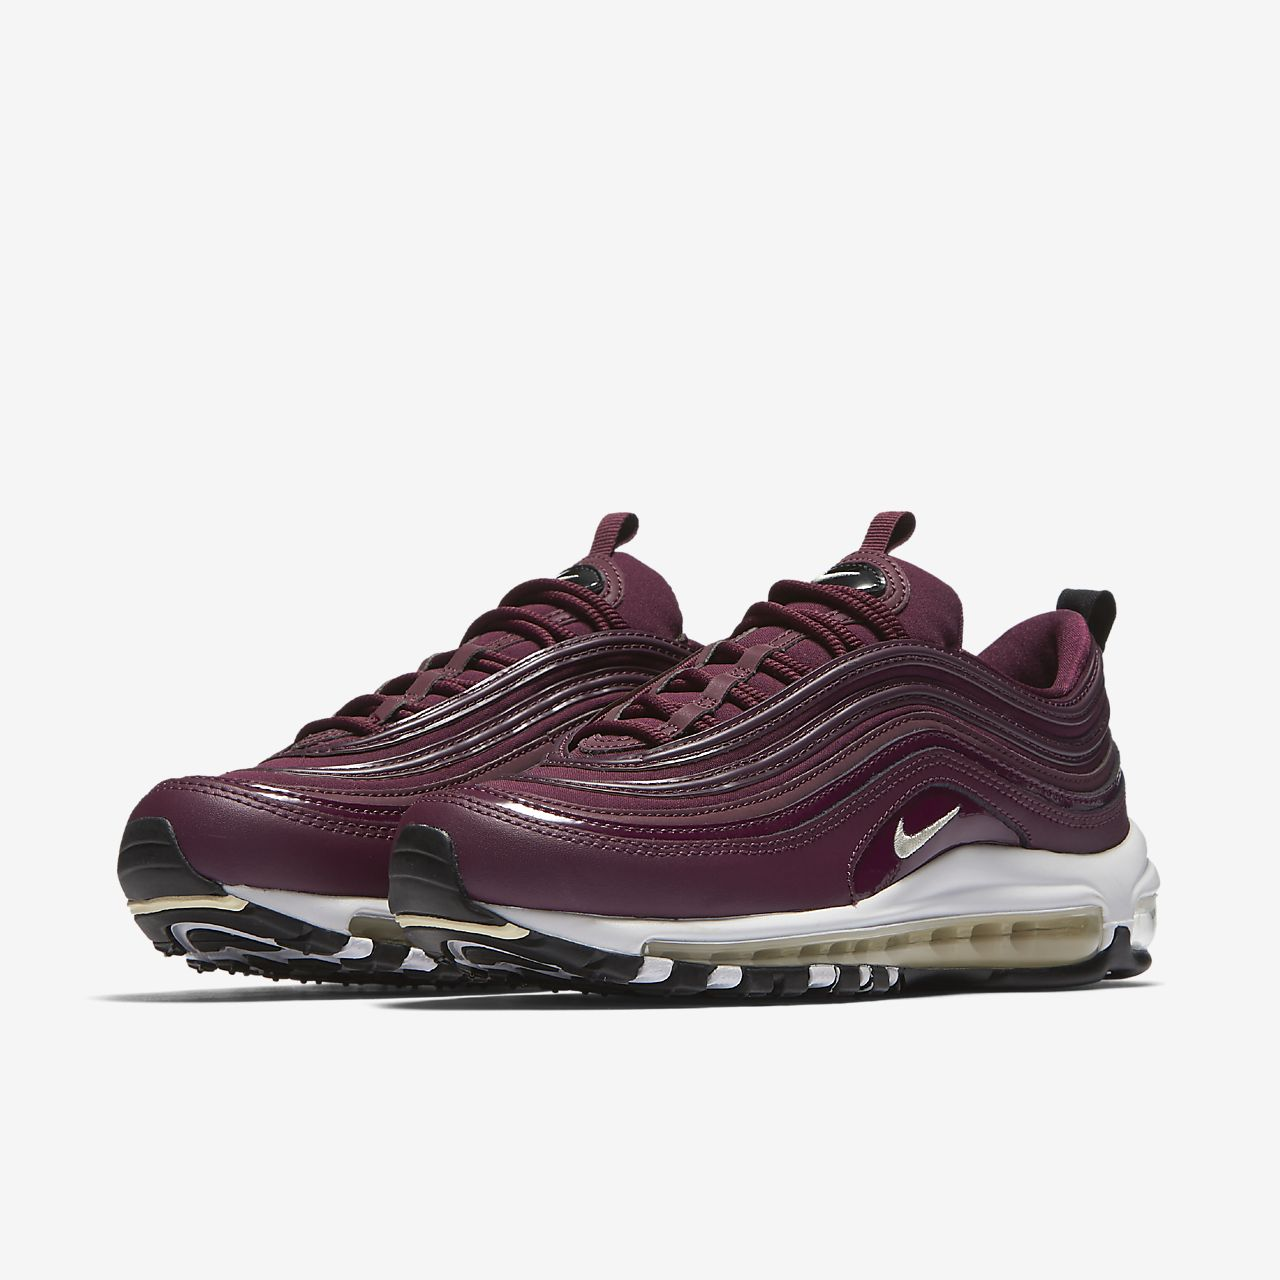 nike air max 97 chica